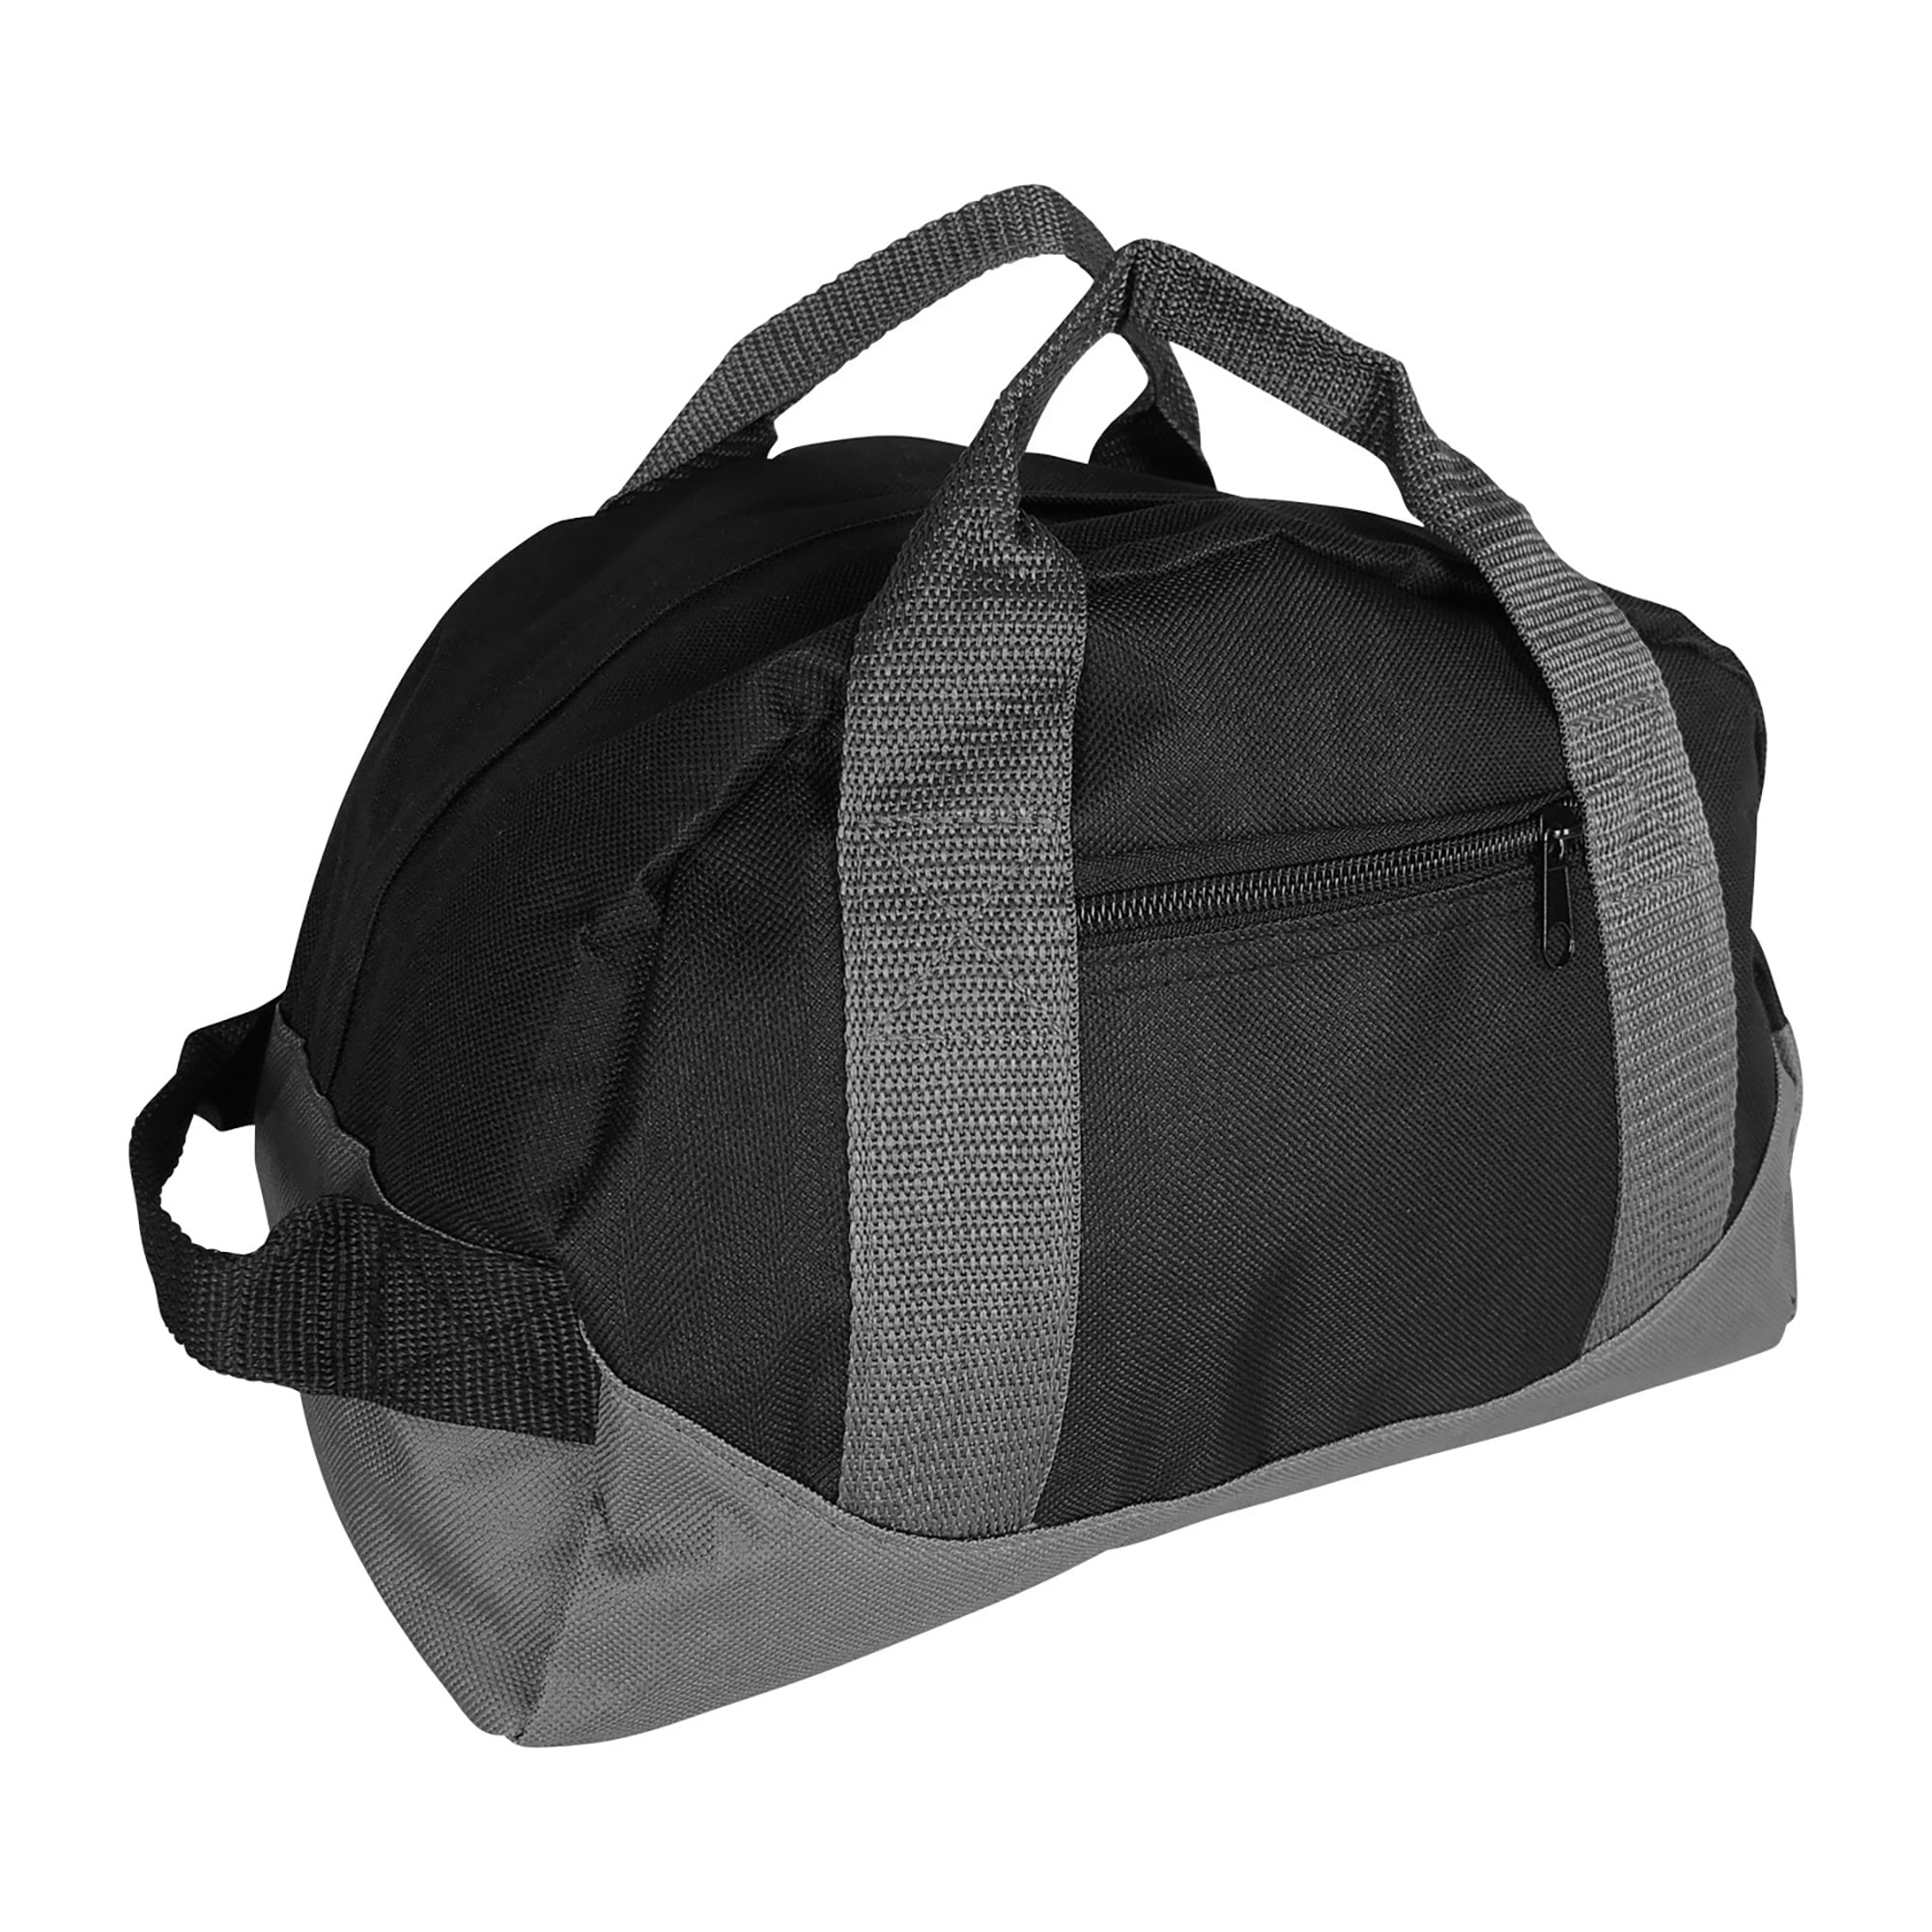 "DALIX 12"" Mini Duffel Bag Gym Duffle in Black by DALIX"